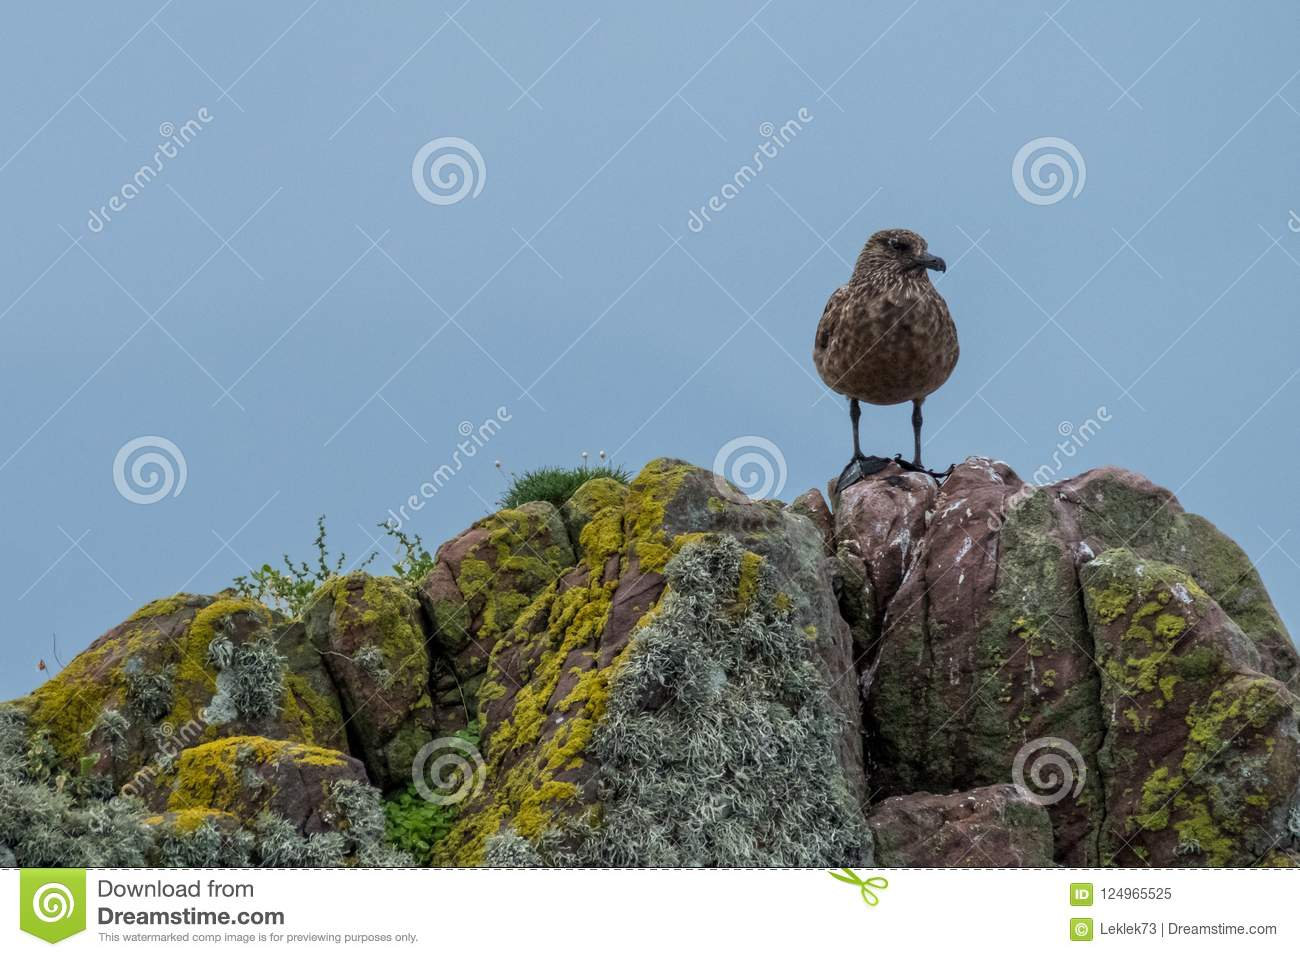 Lone brown seagull stands on a rocks covered in colourful lichen. Photographed on the North Coast 500 driving route in Scotland